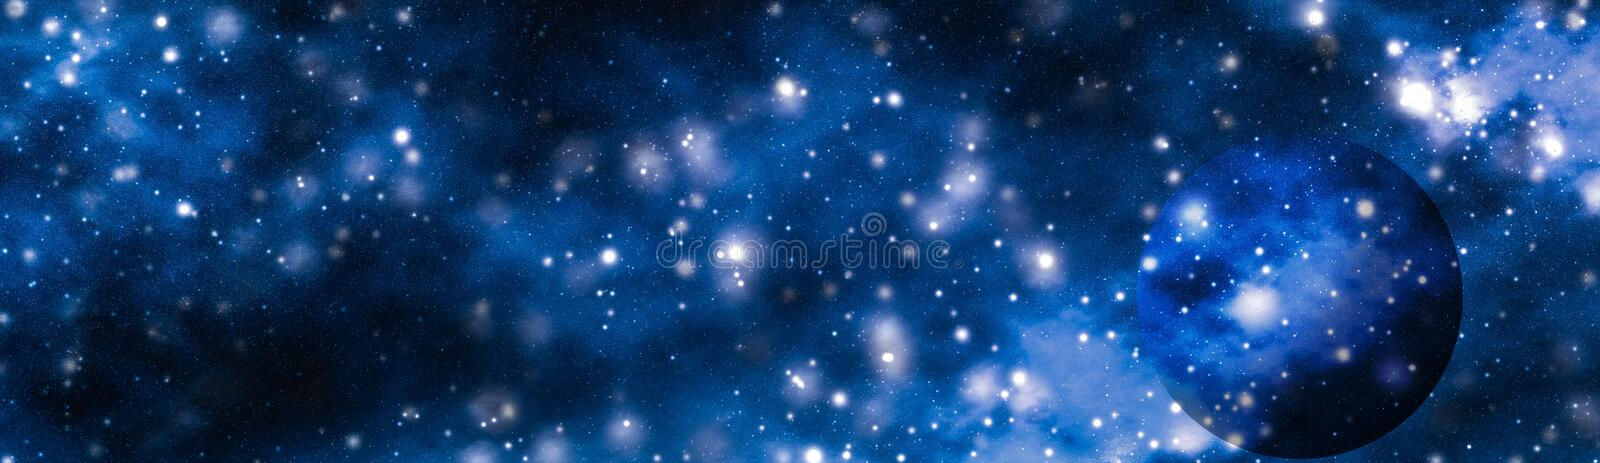 Stars, planet and galaxy in cosmos universe, space and time travel science background stock photo